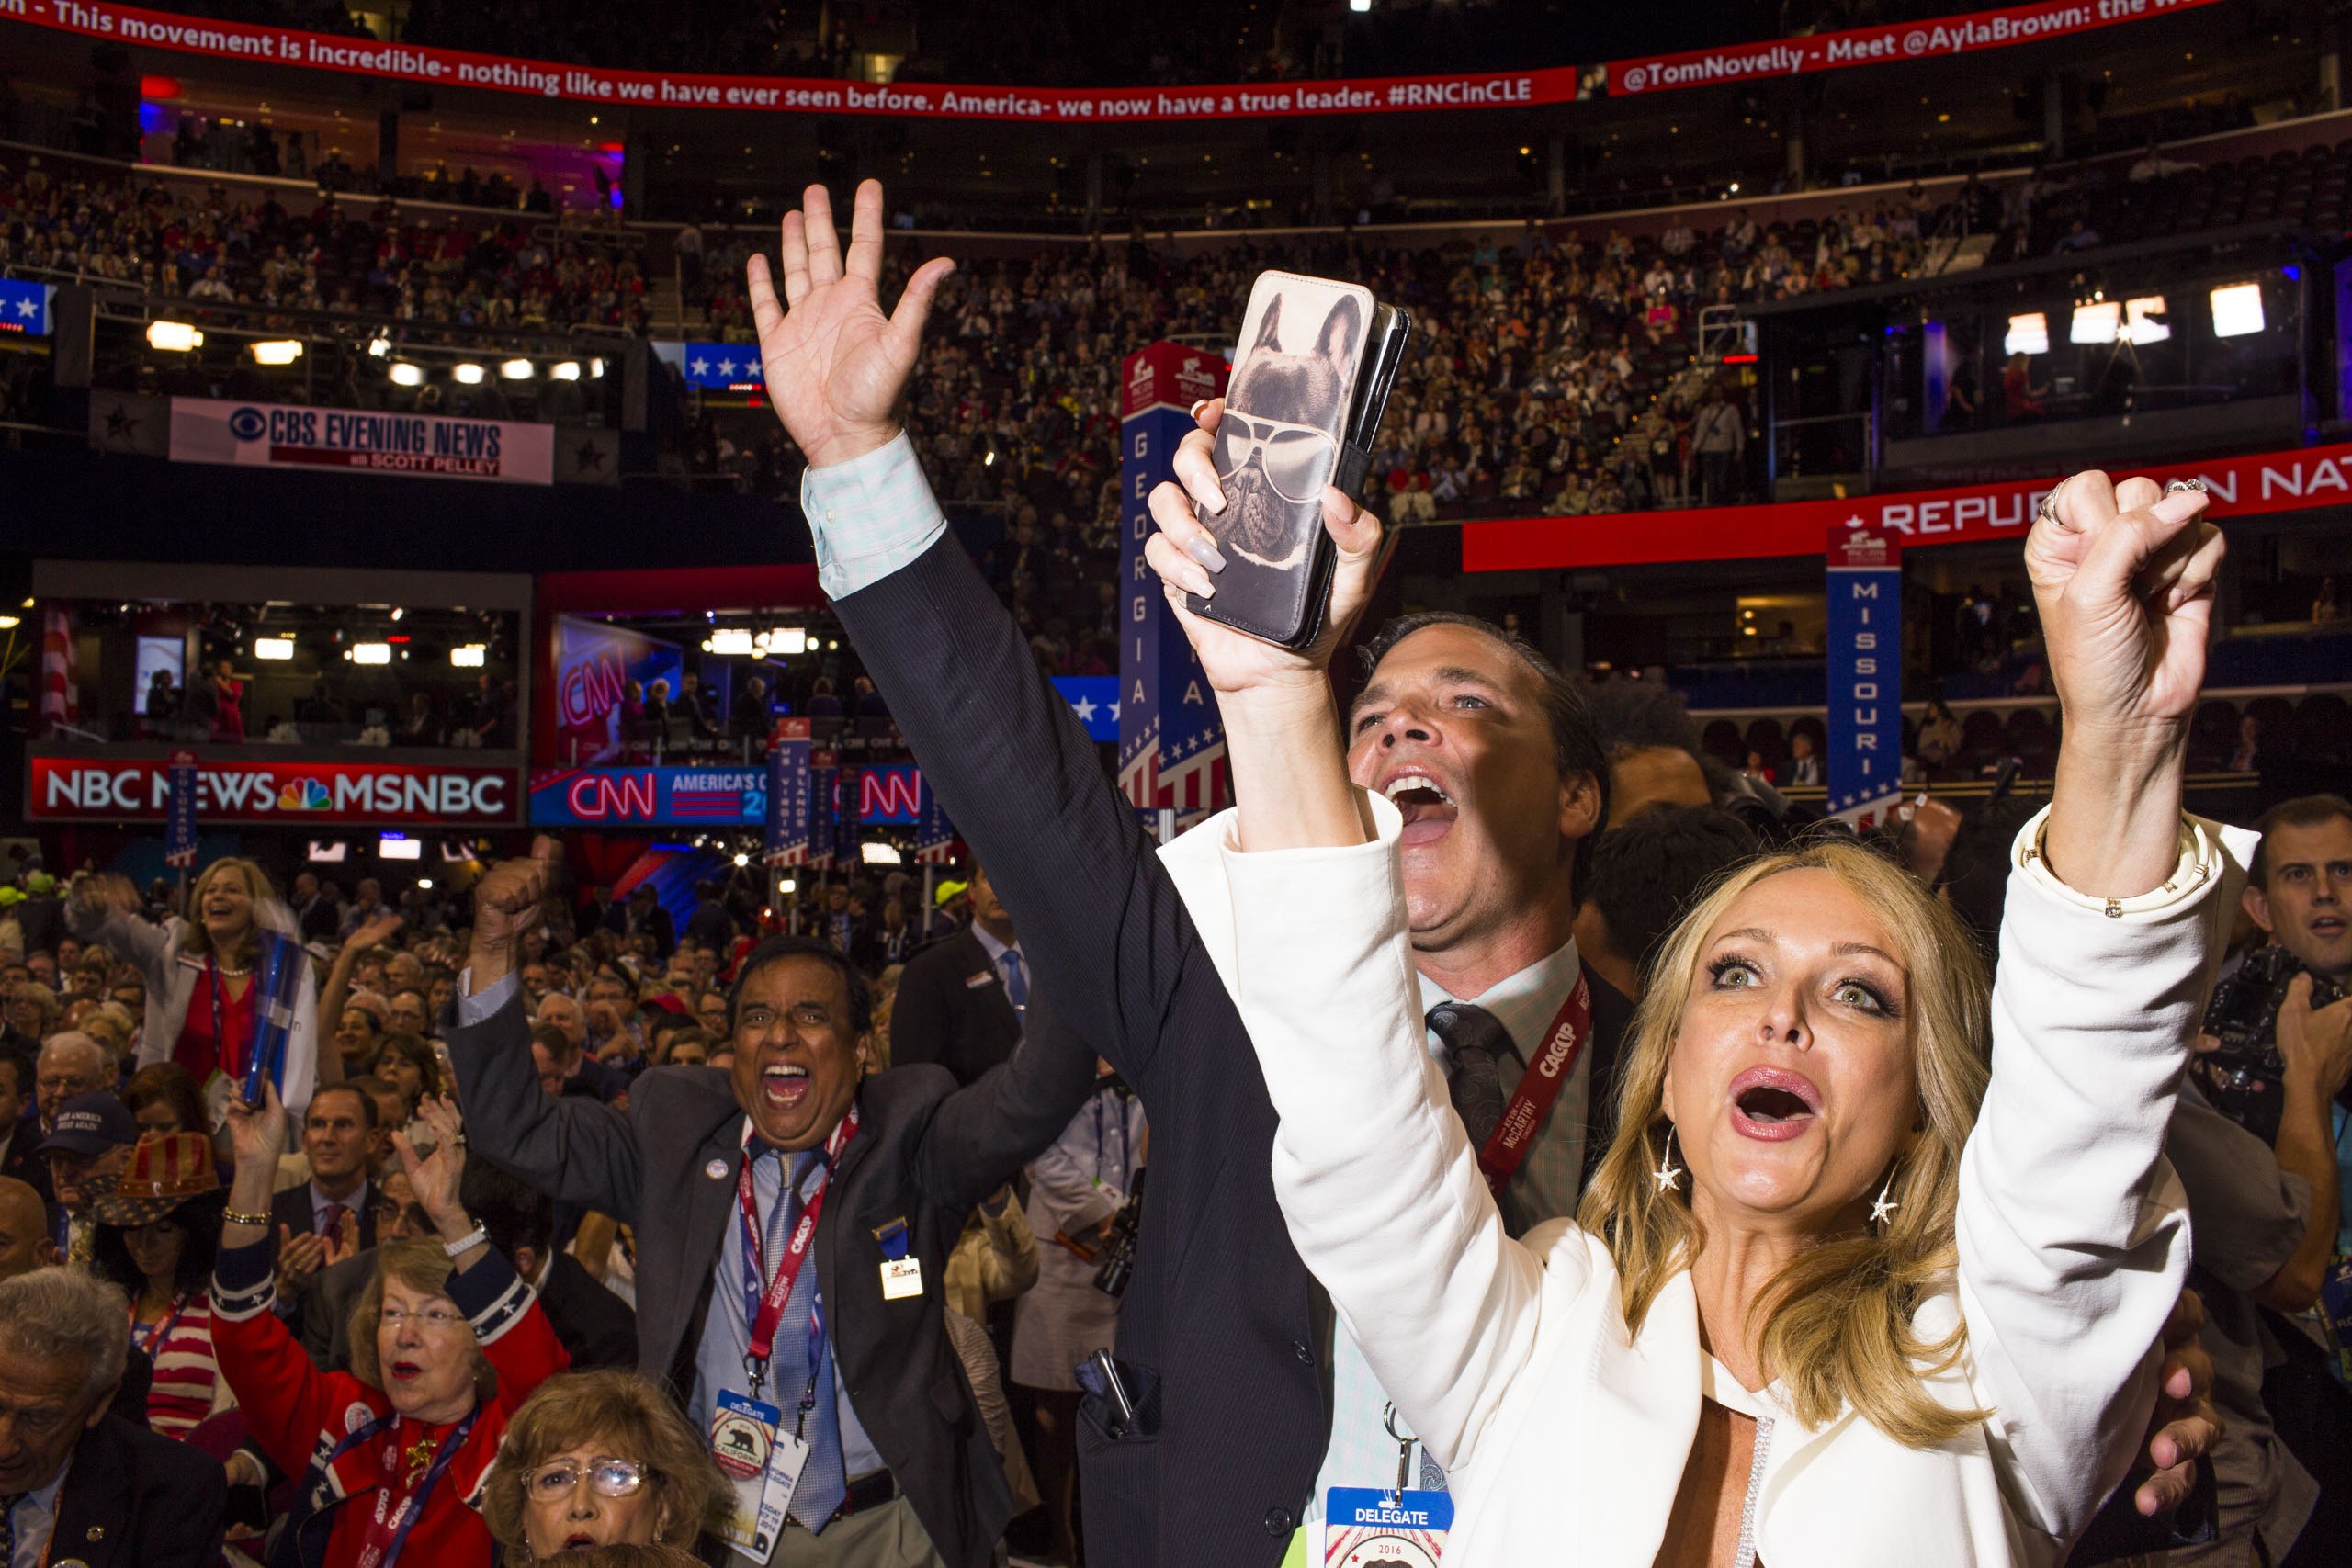 Delegates react to a speech at the Republican National Convention, July 19, 2016 in Cleveland.